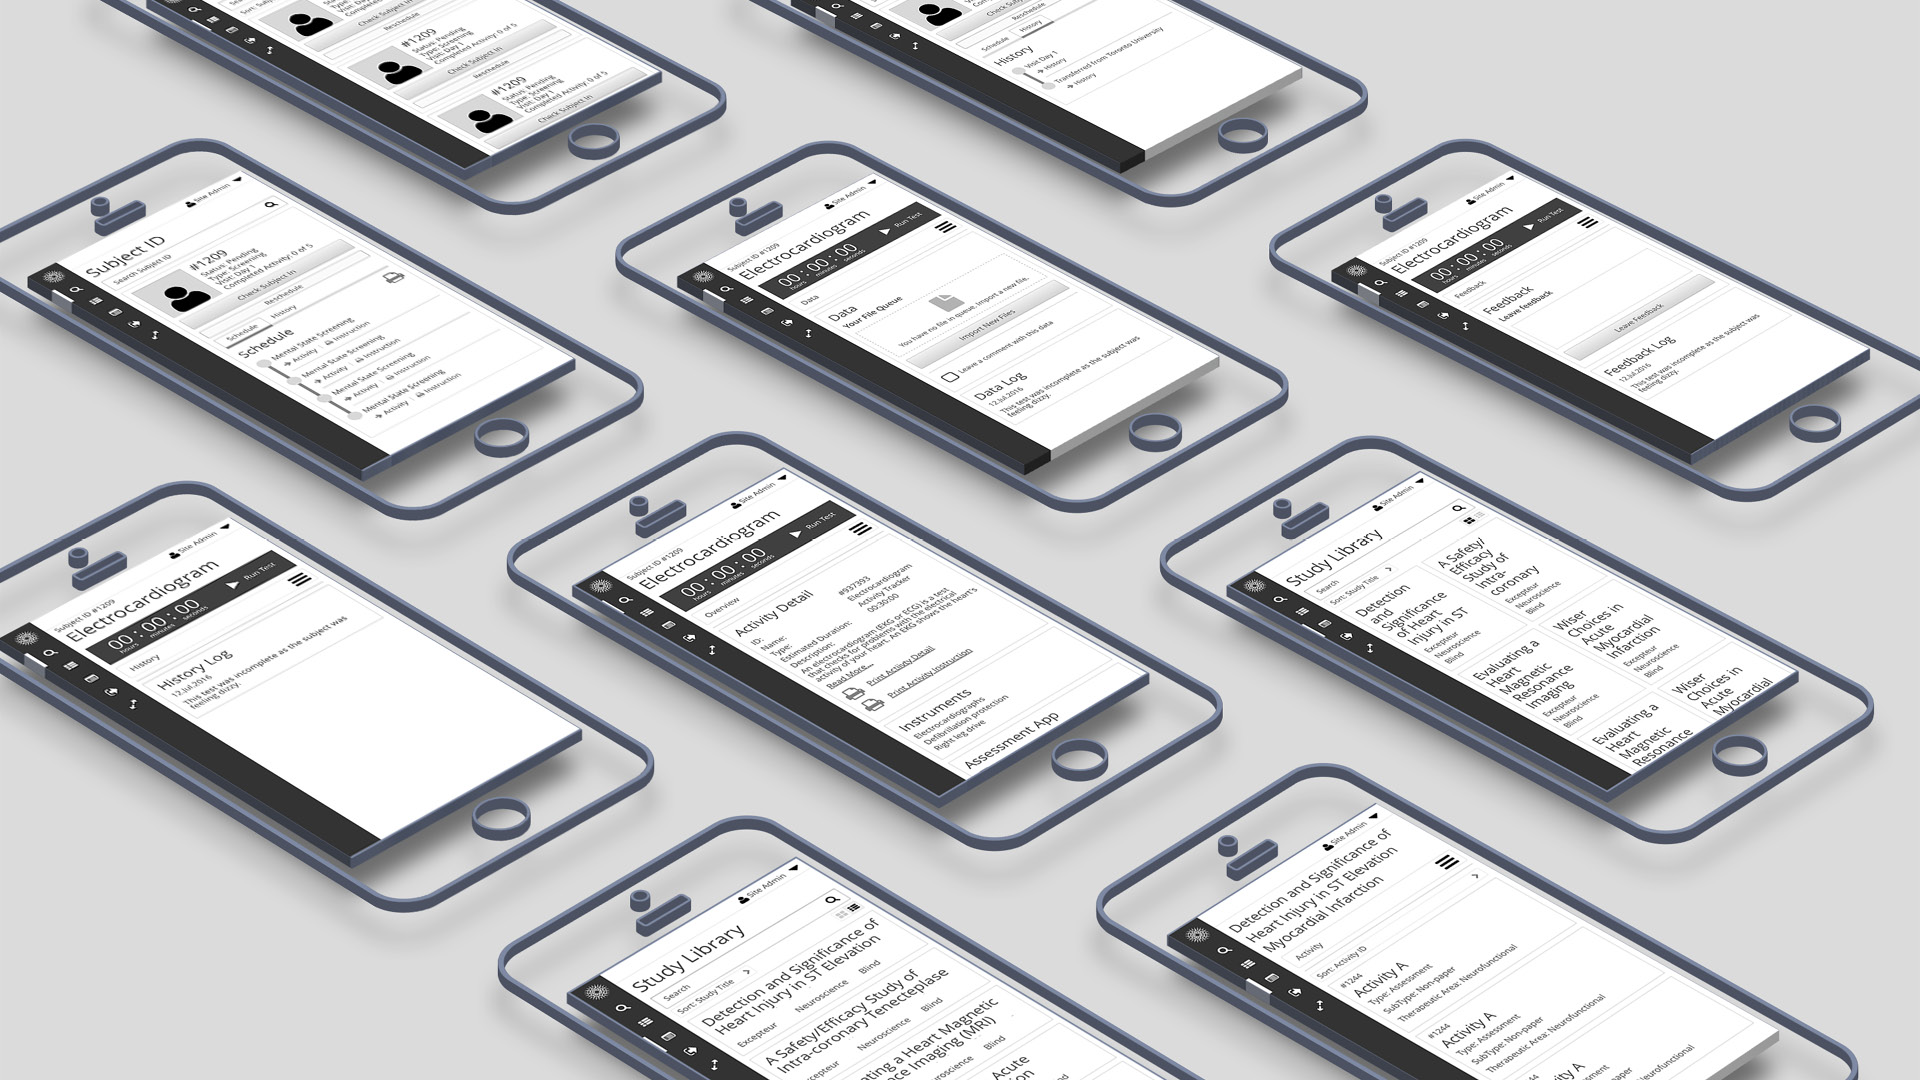 Sunrise: Clinical research app wireframe